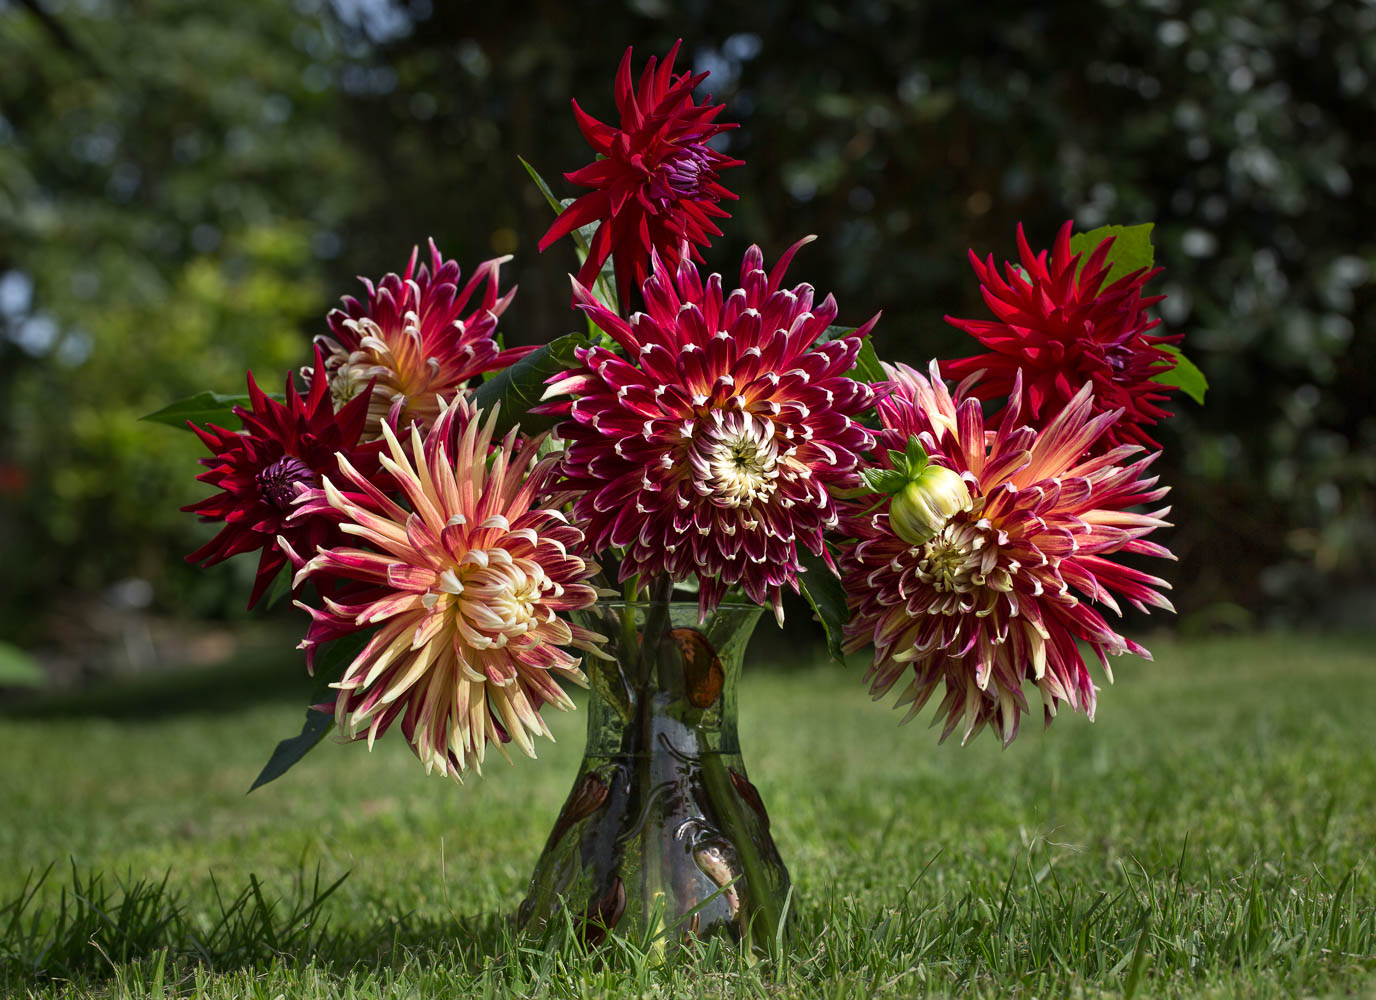 Red Dahlias in a vase